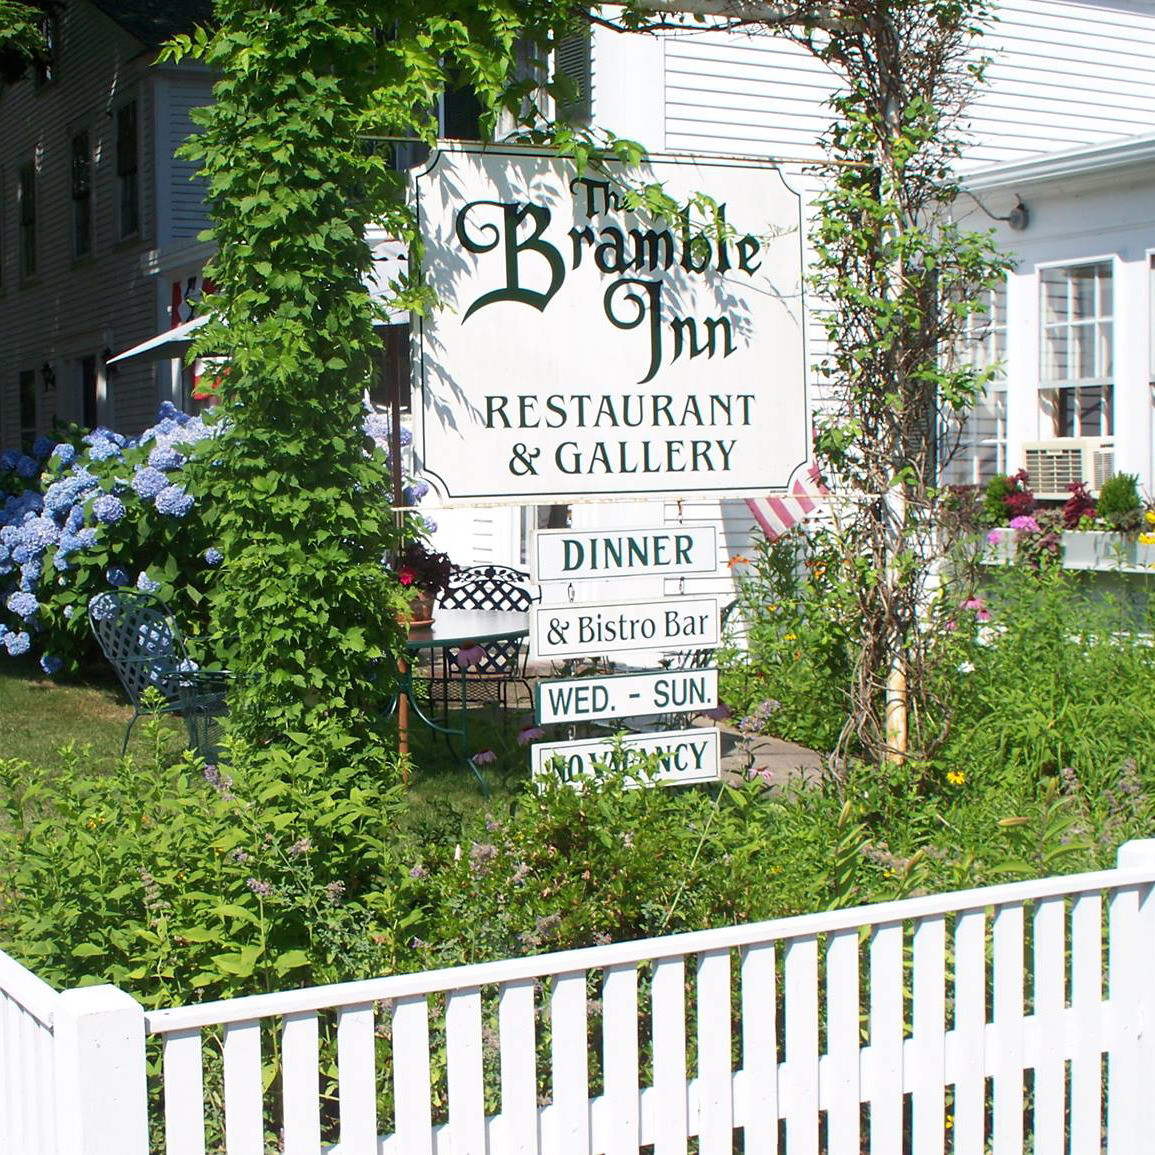 Cape Cod Save: The Bramble Inn